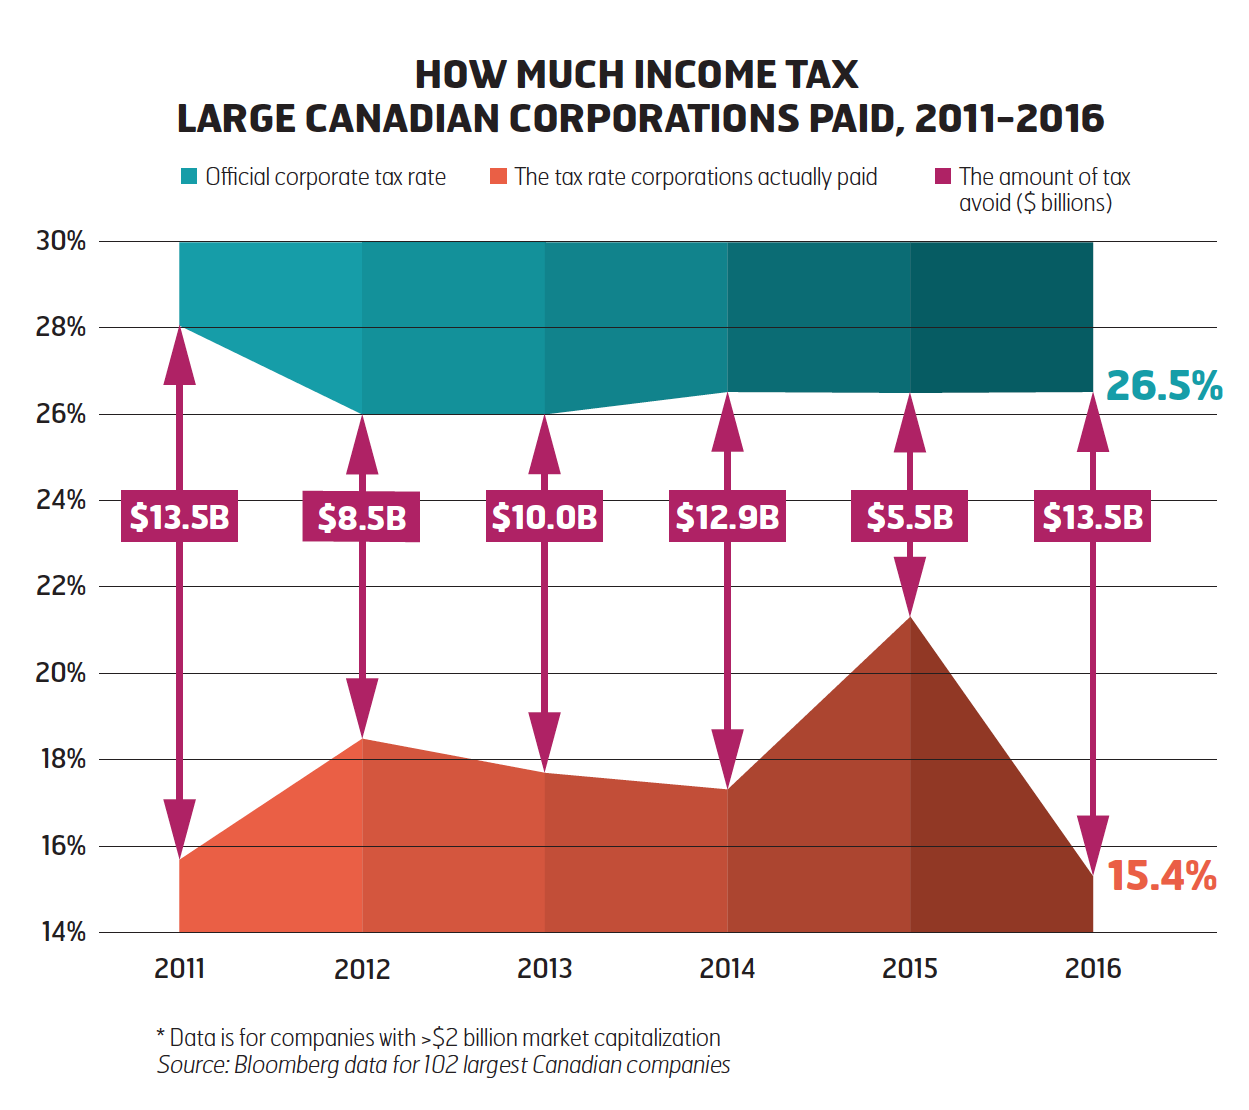 How much income tax large Canadian corporations paid, 2011-2016